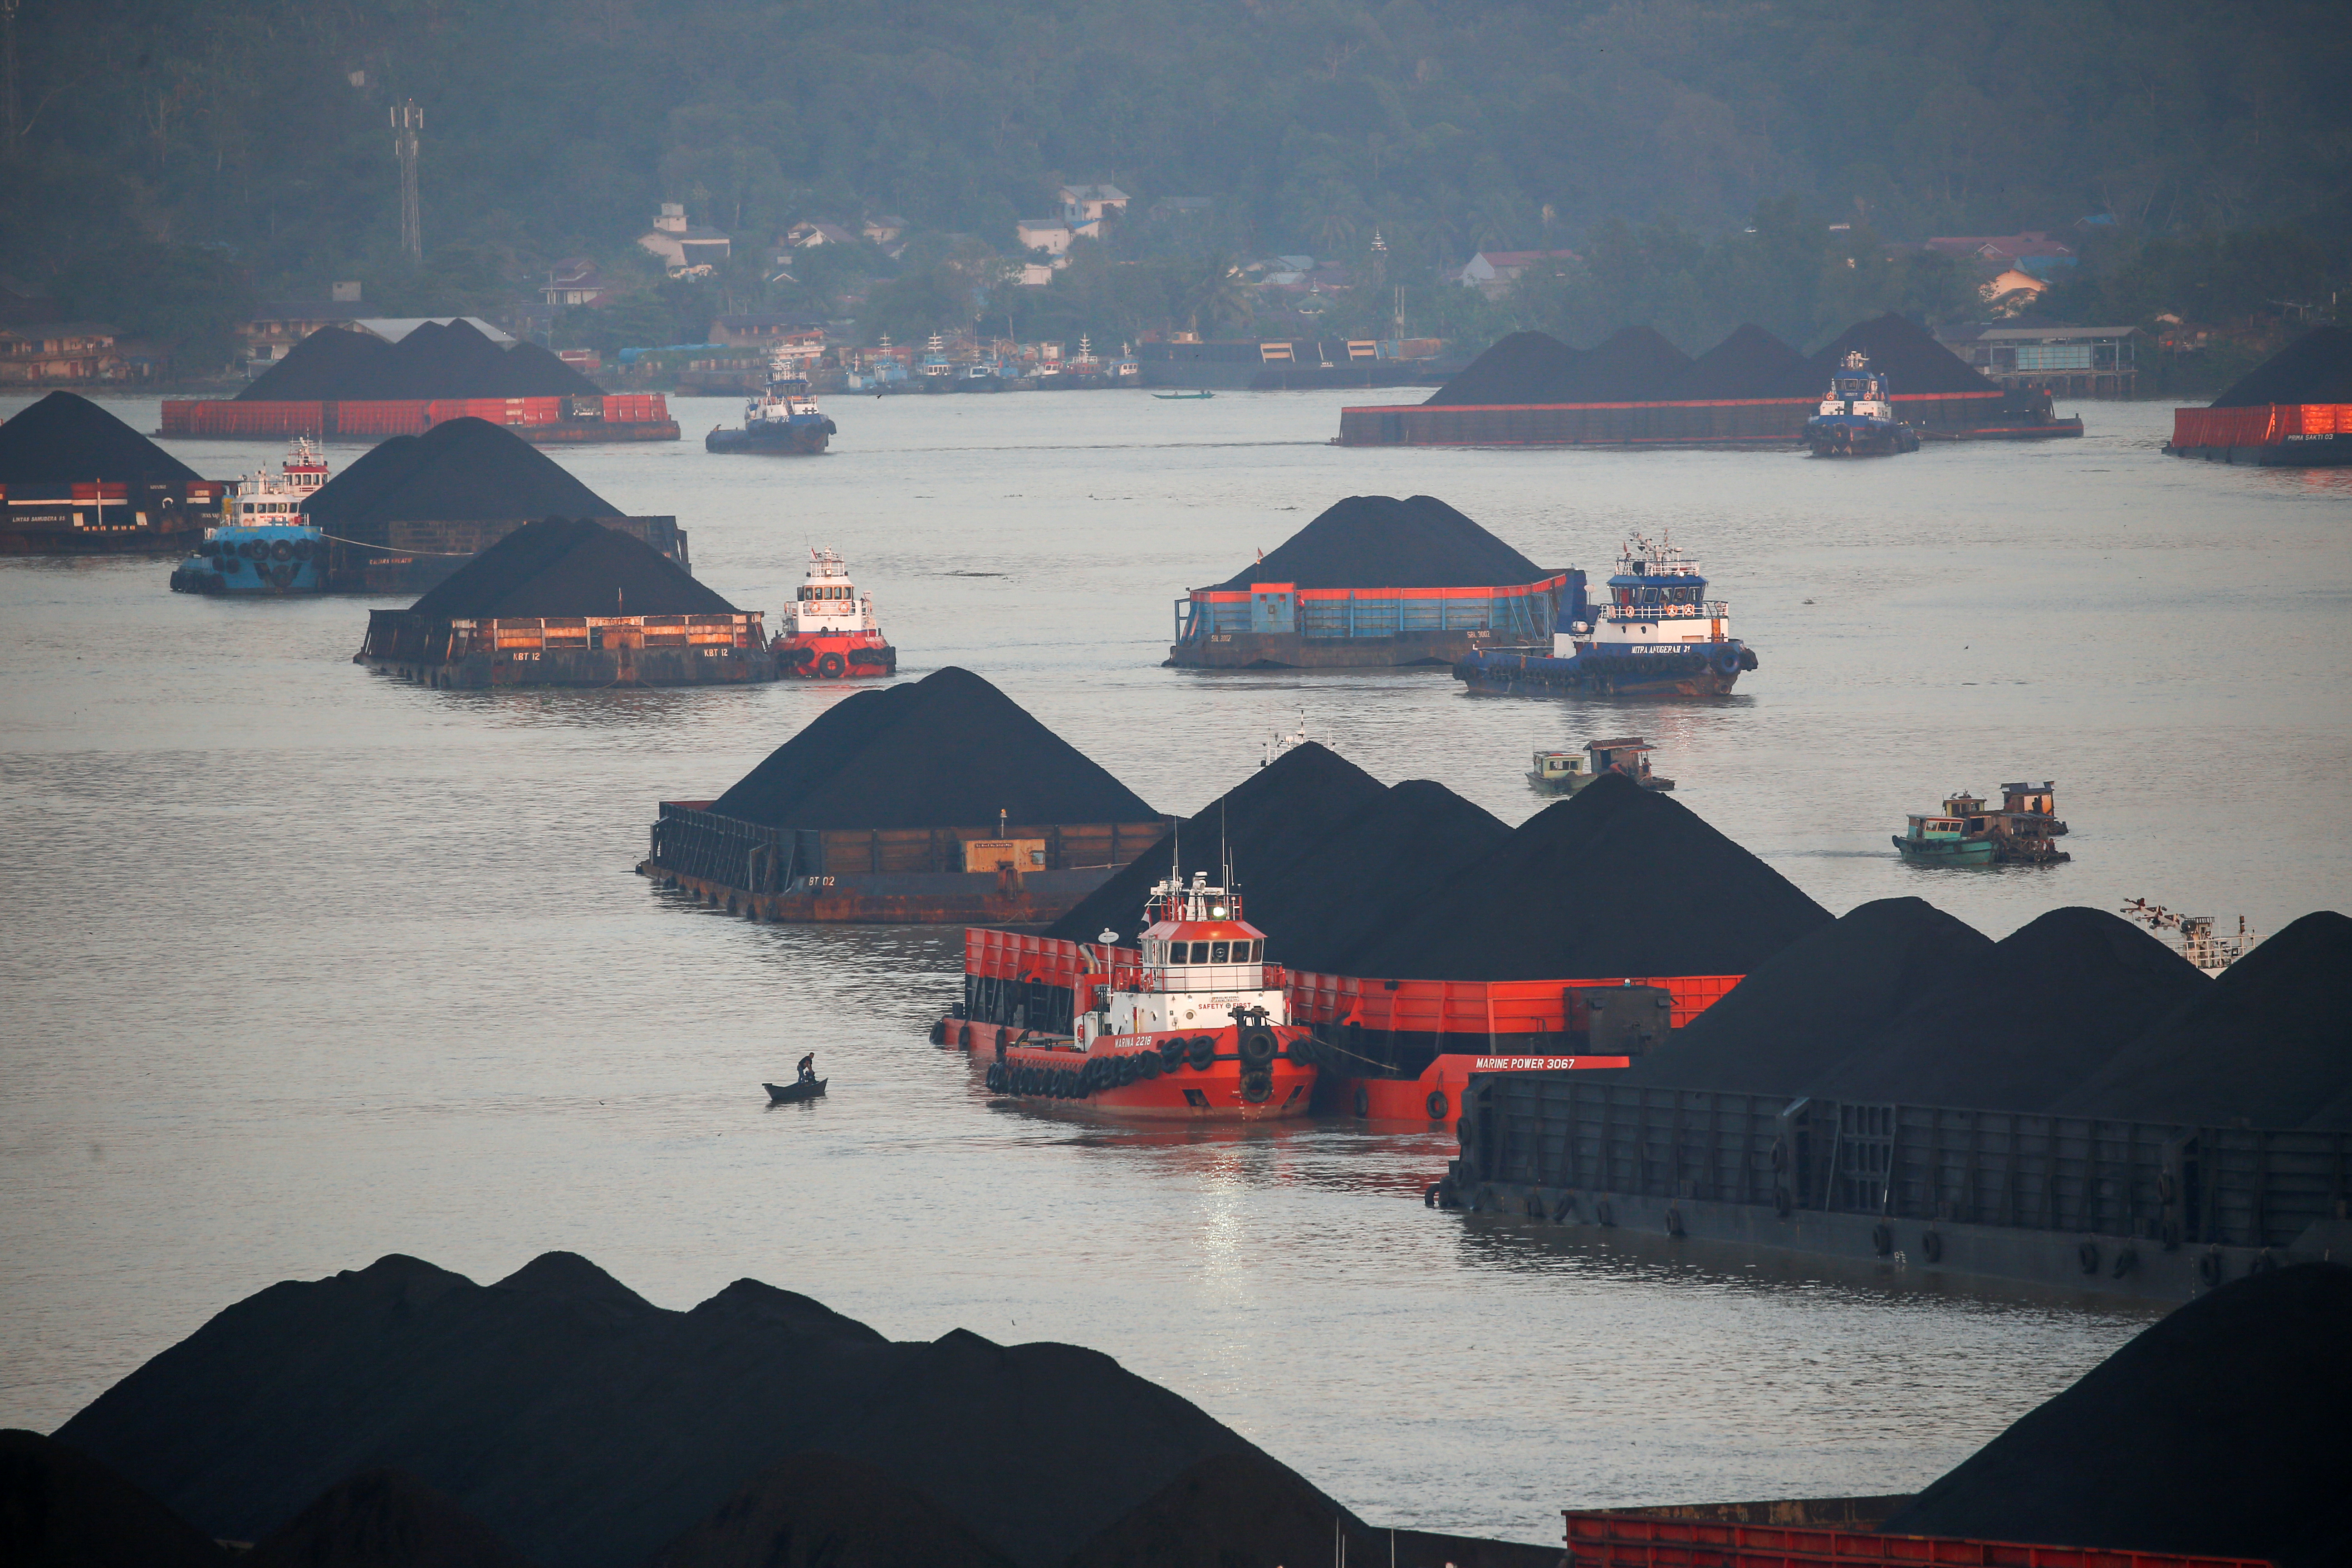 Coal barges are pictured as they queue to be pulled along Mahakam river in Samarinda, East Kalimantan province, Indonesia, August 31, 2019. Picture taken August 31, 2019. REUTERS/Willy Kurniawan